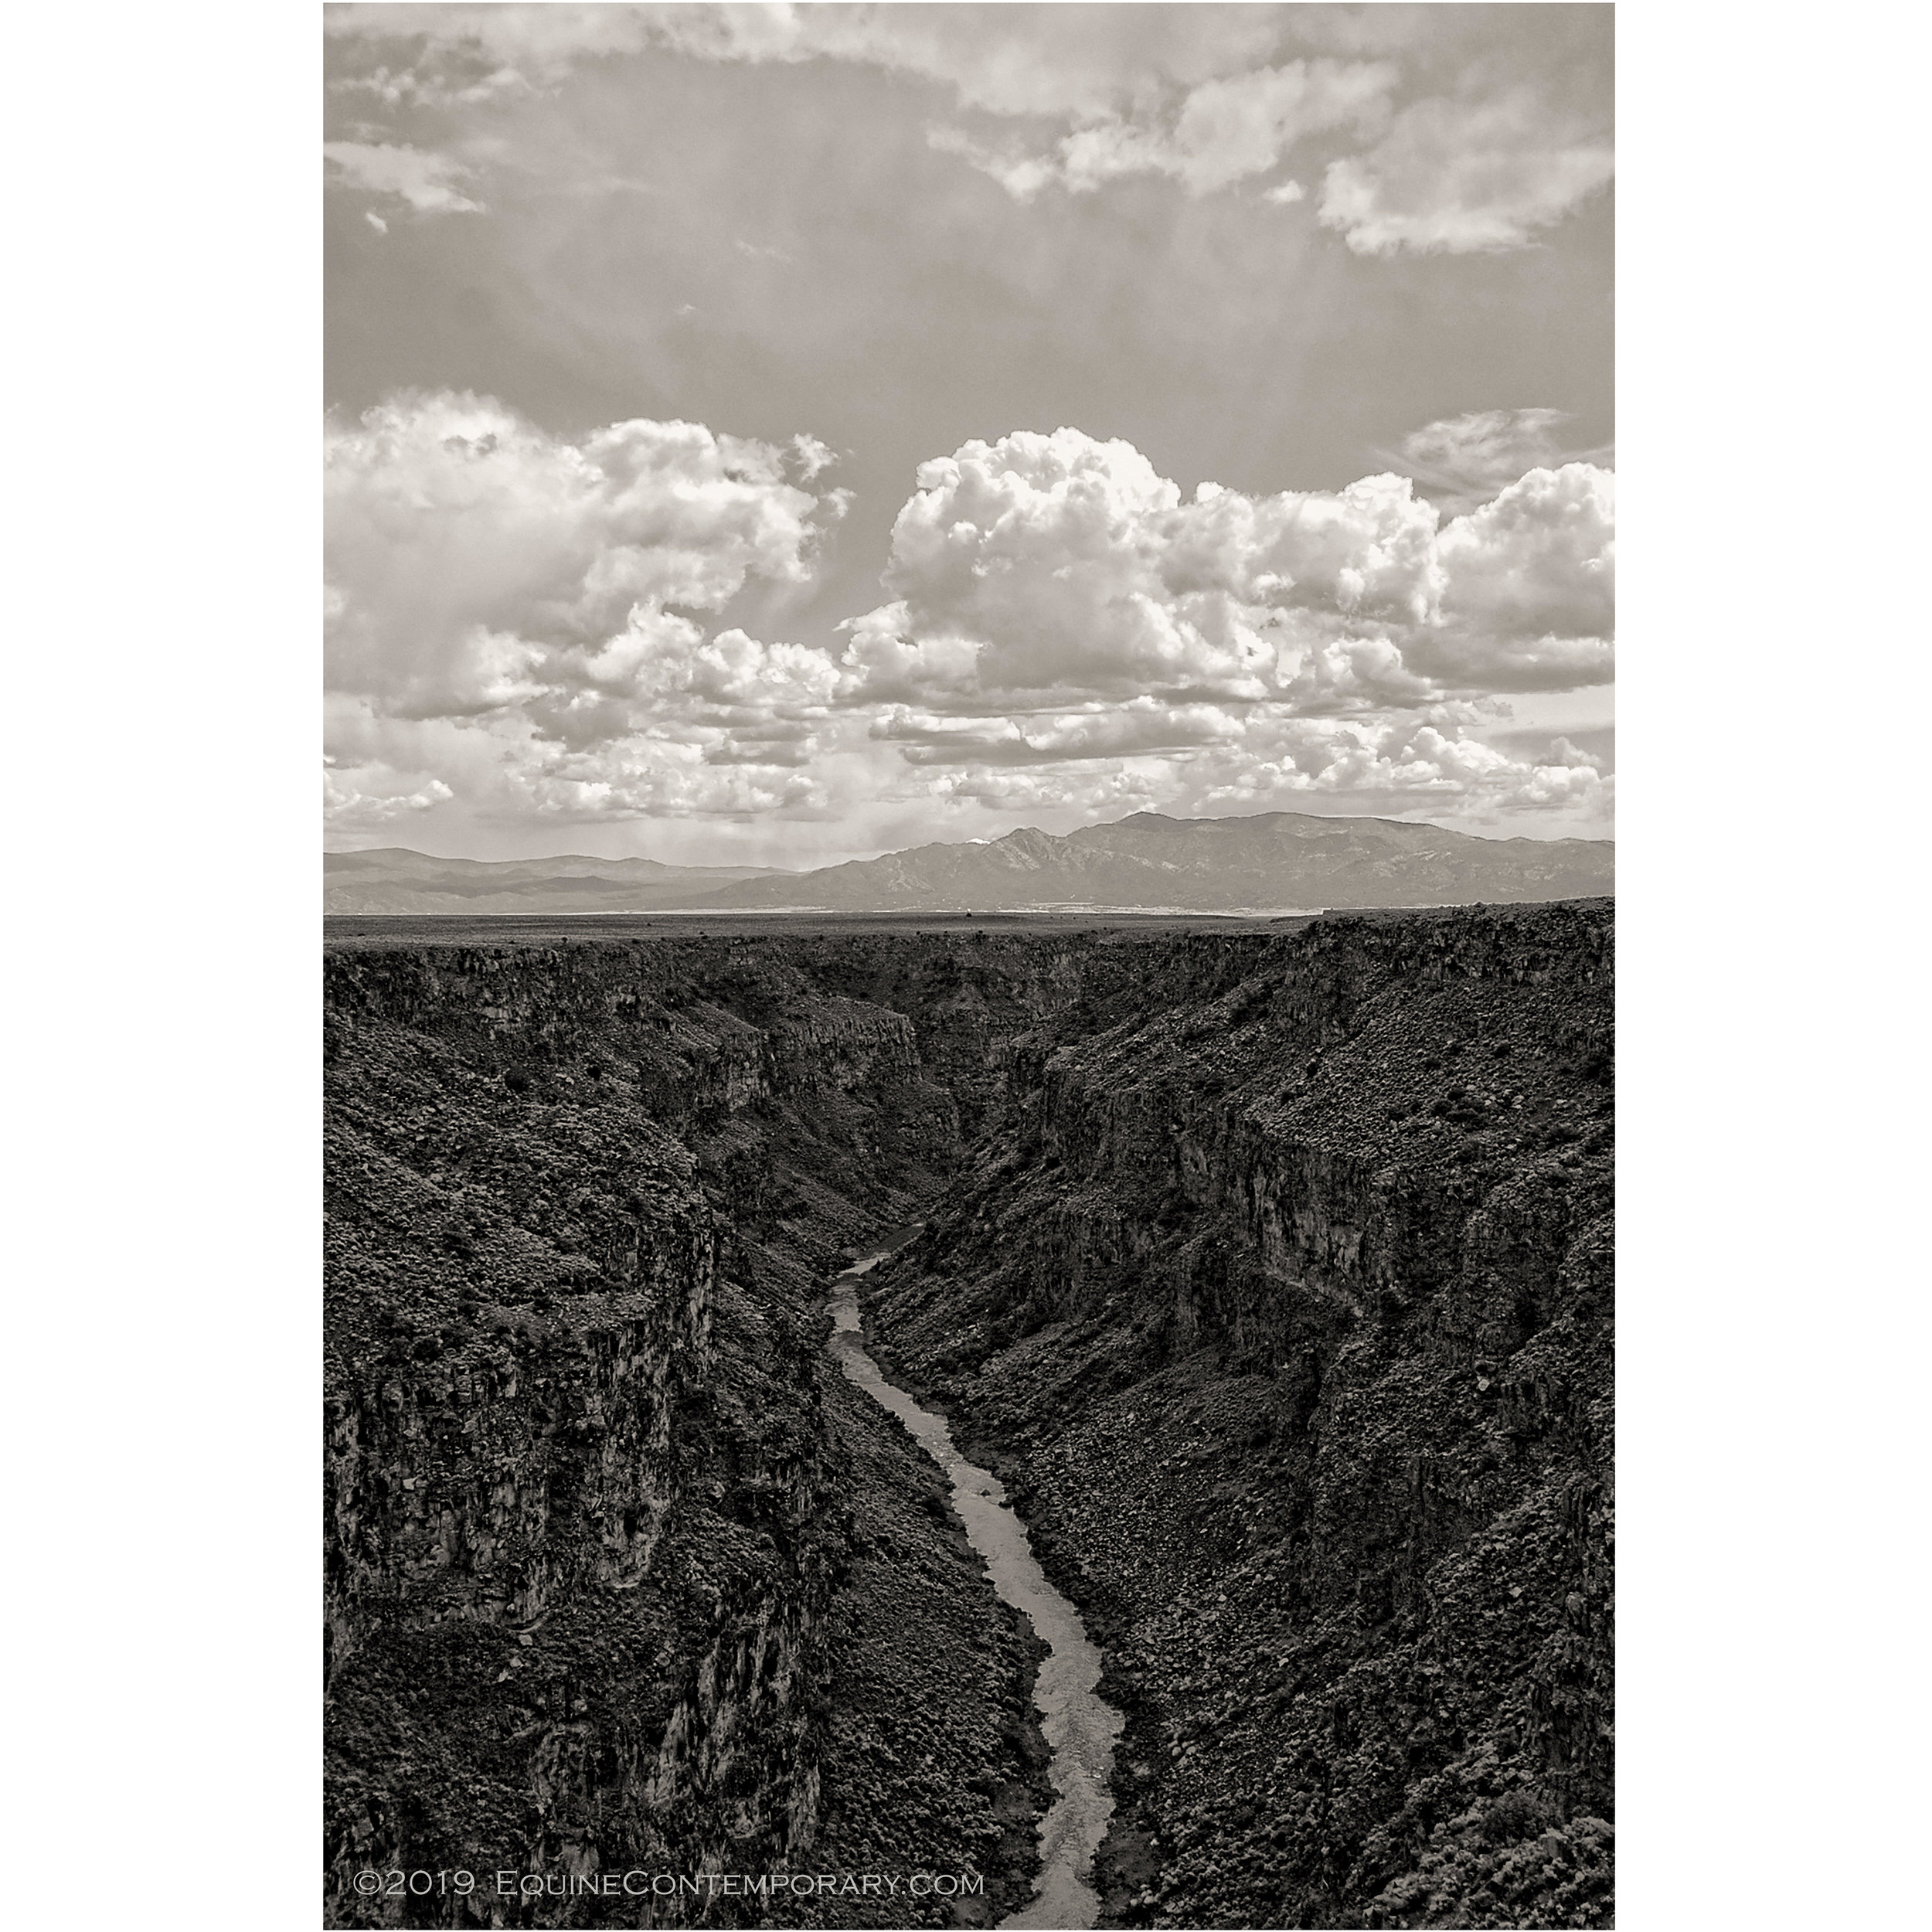 """Untitled, Rio Grande Gorge - Archival Pigment Print16"""" x 24"""" (+2 in. border) watercolor cotton paper $375.Dye Sub Metal Print16"""" x 24"""" (borderless) on recycled aluminum $895."""